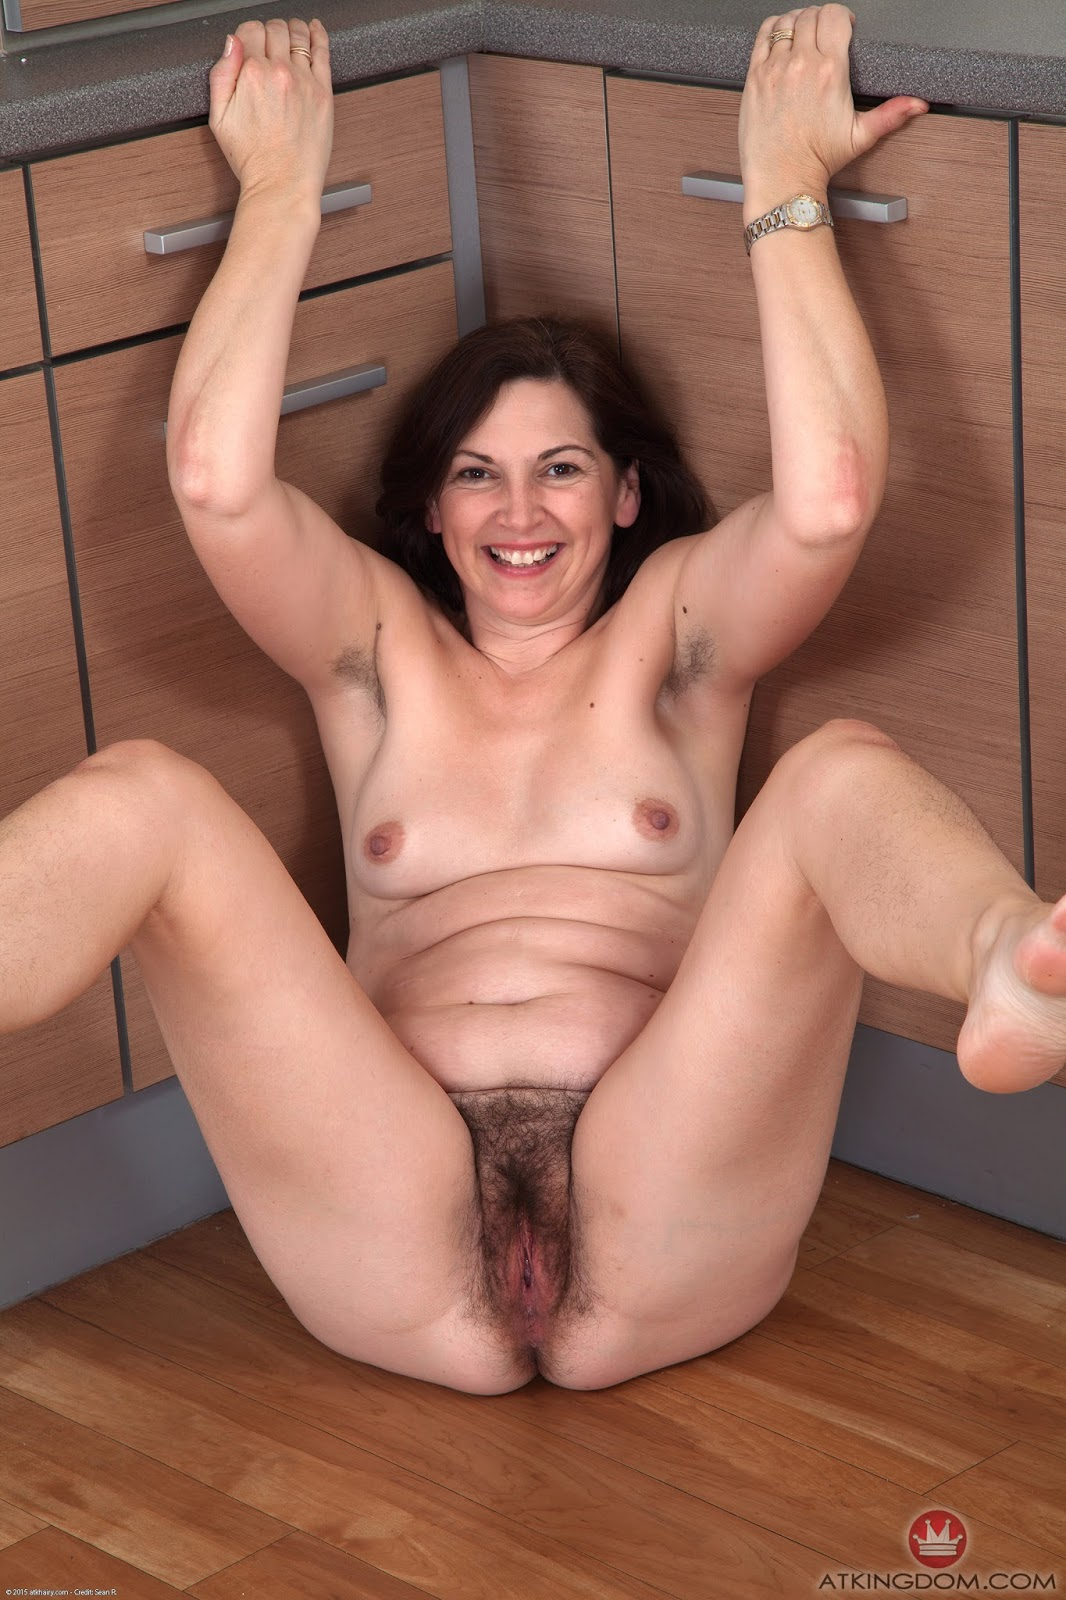 hairy older women nude free pron videos - lennatin